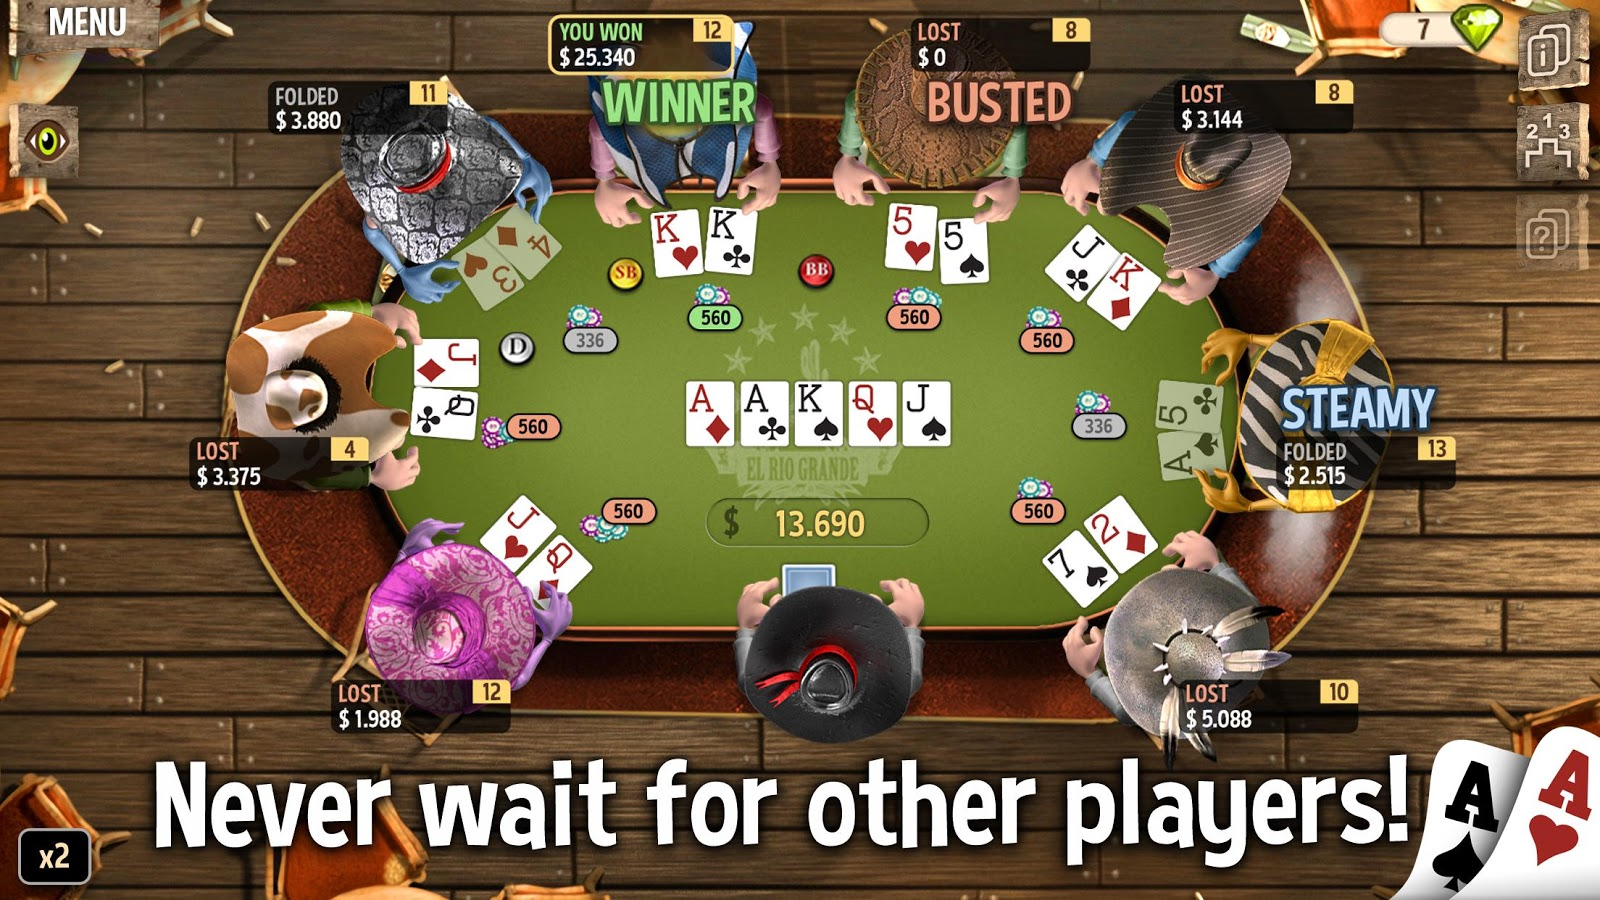 Bet on Poker Table Game - Play the Online Version for Free